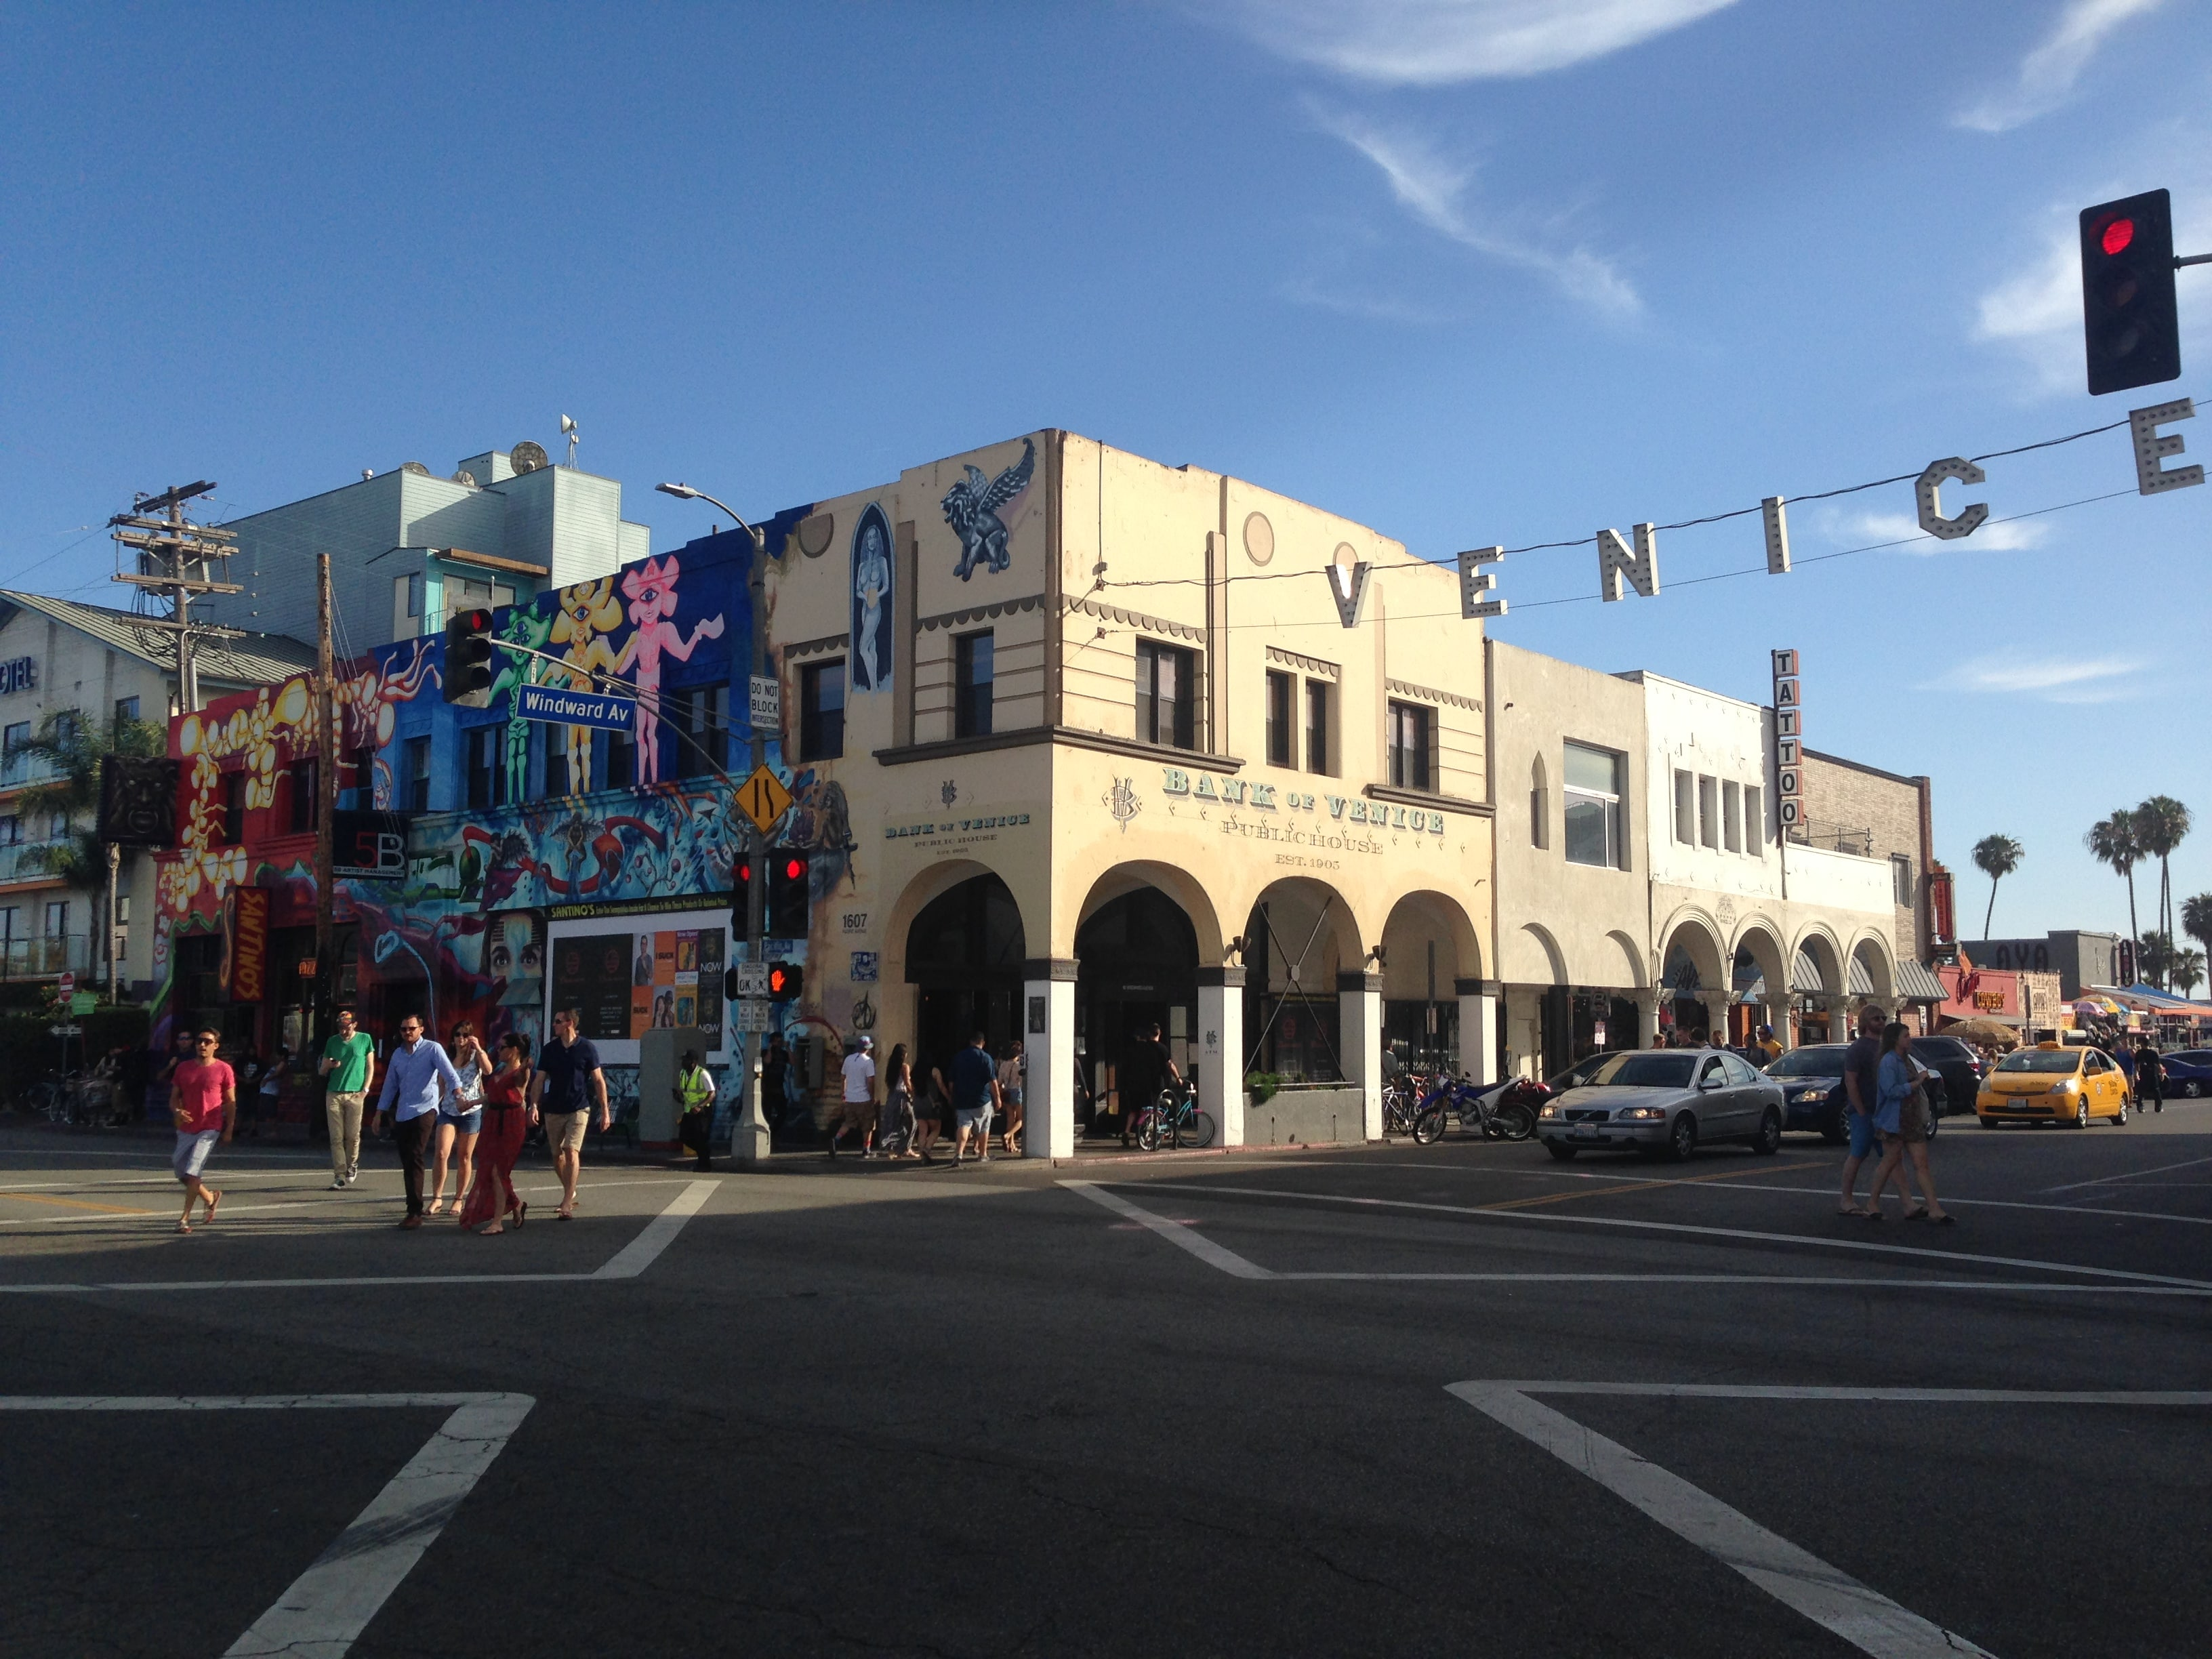 Where to stay in LA? Lively Venice Beach offers all sorts of fun